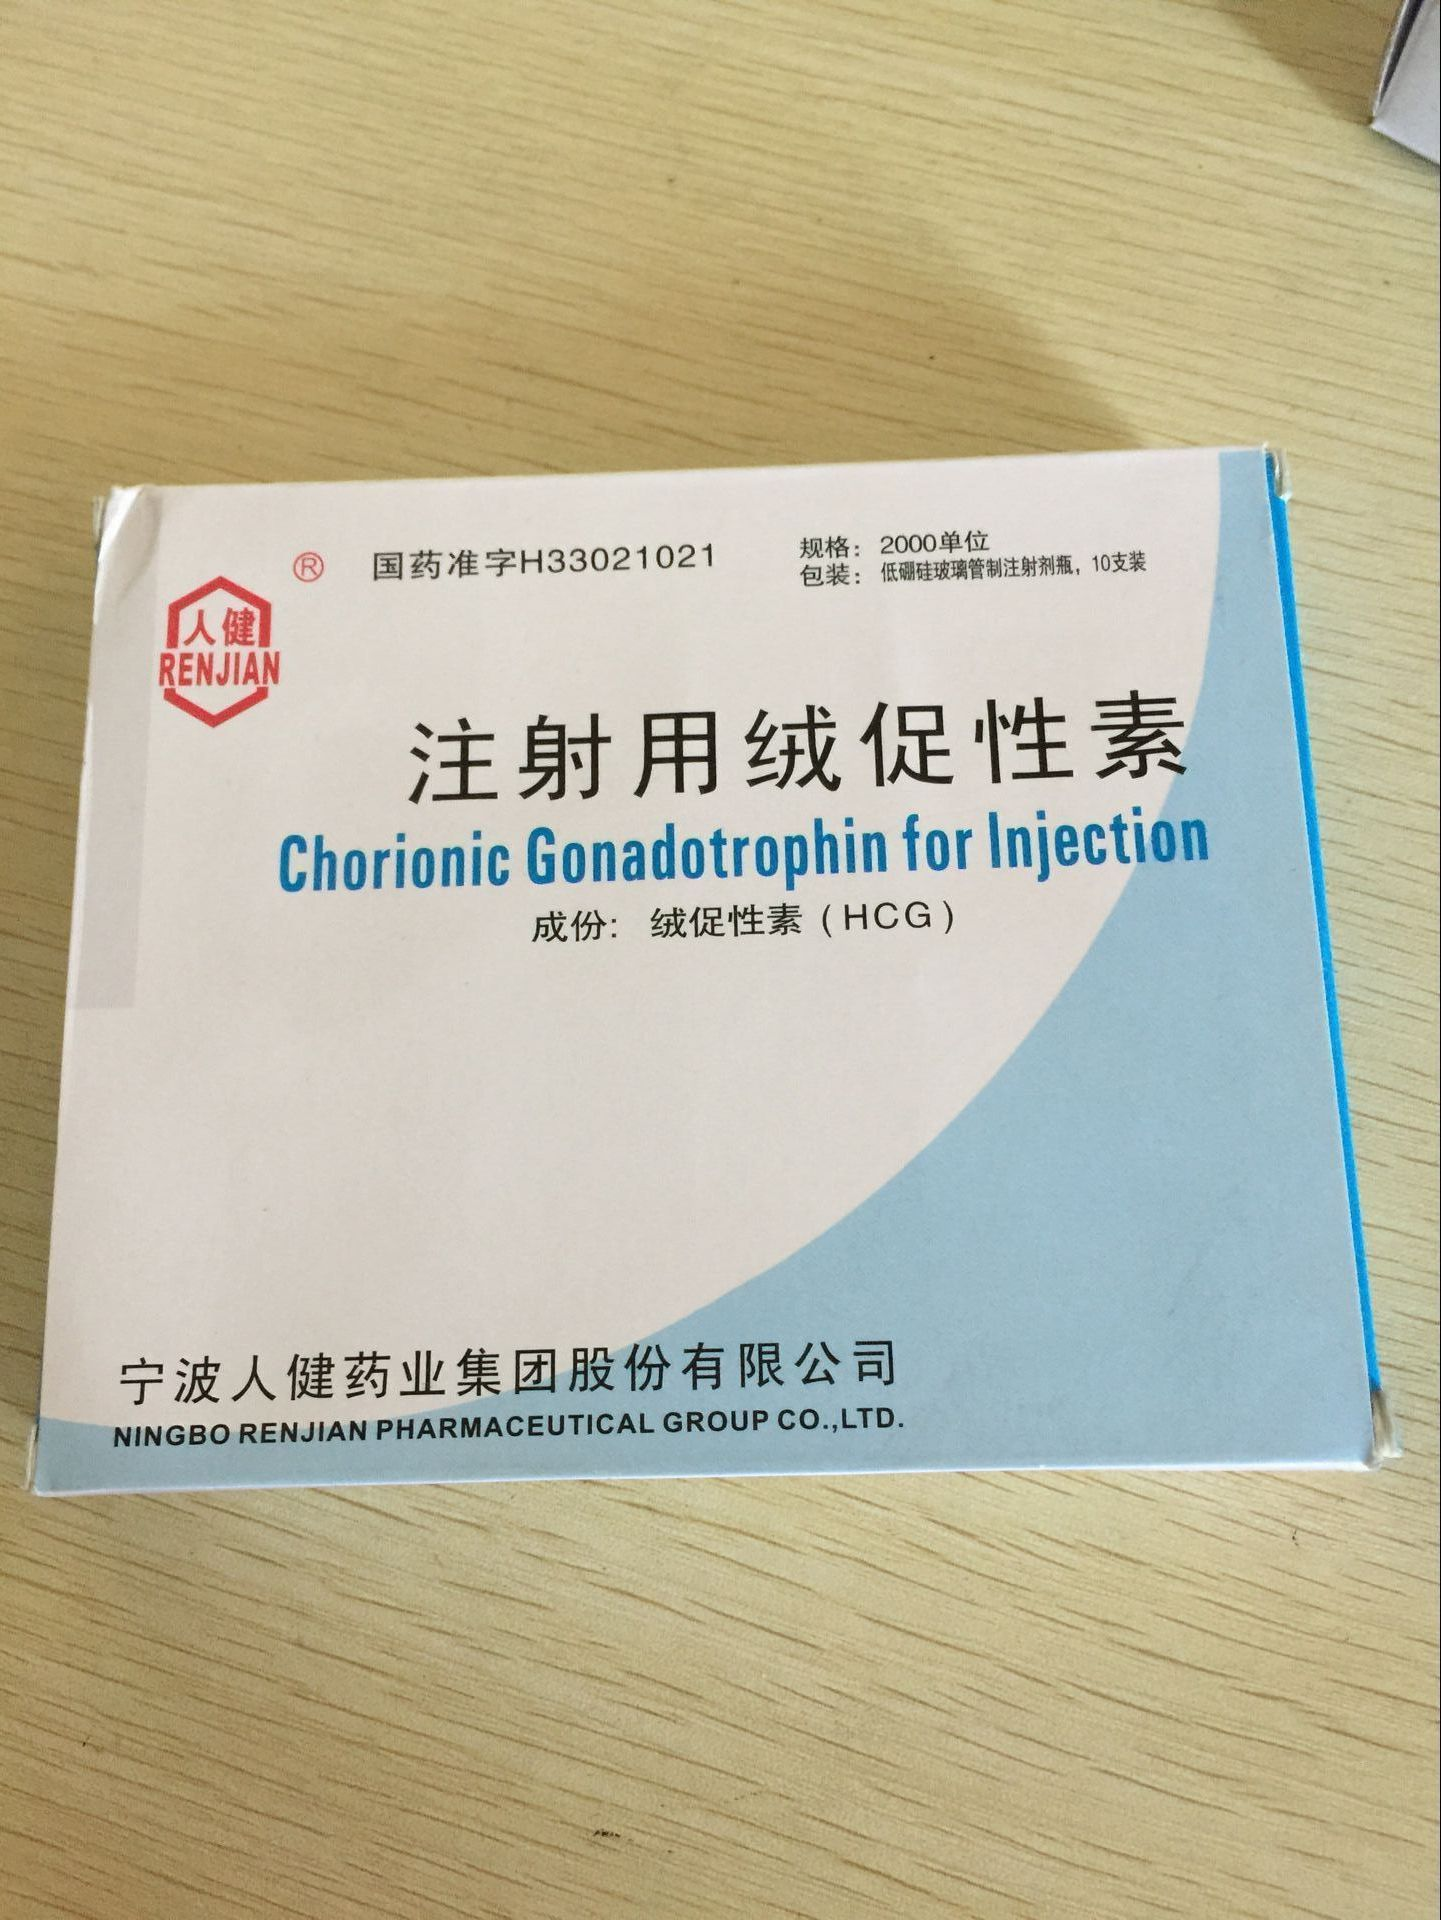 HCG 1000iu Steroids Peptides Hormone Humantrope Hgh Human Growth